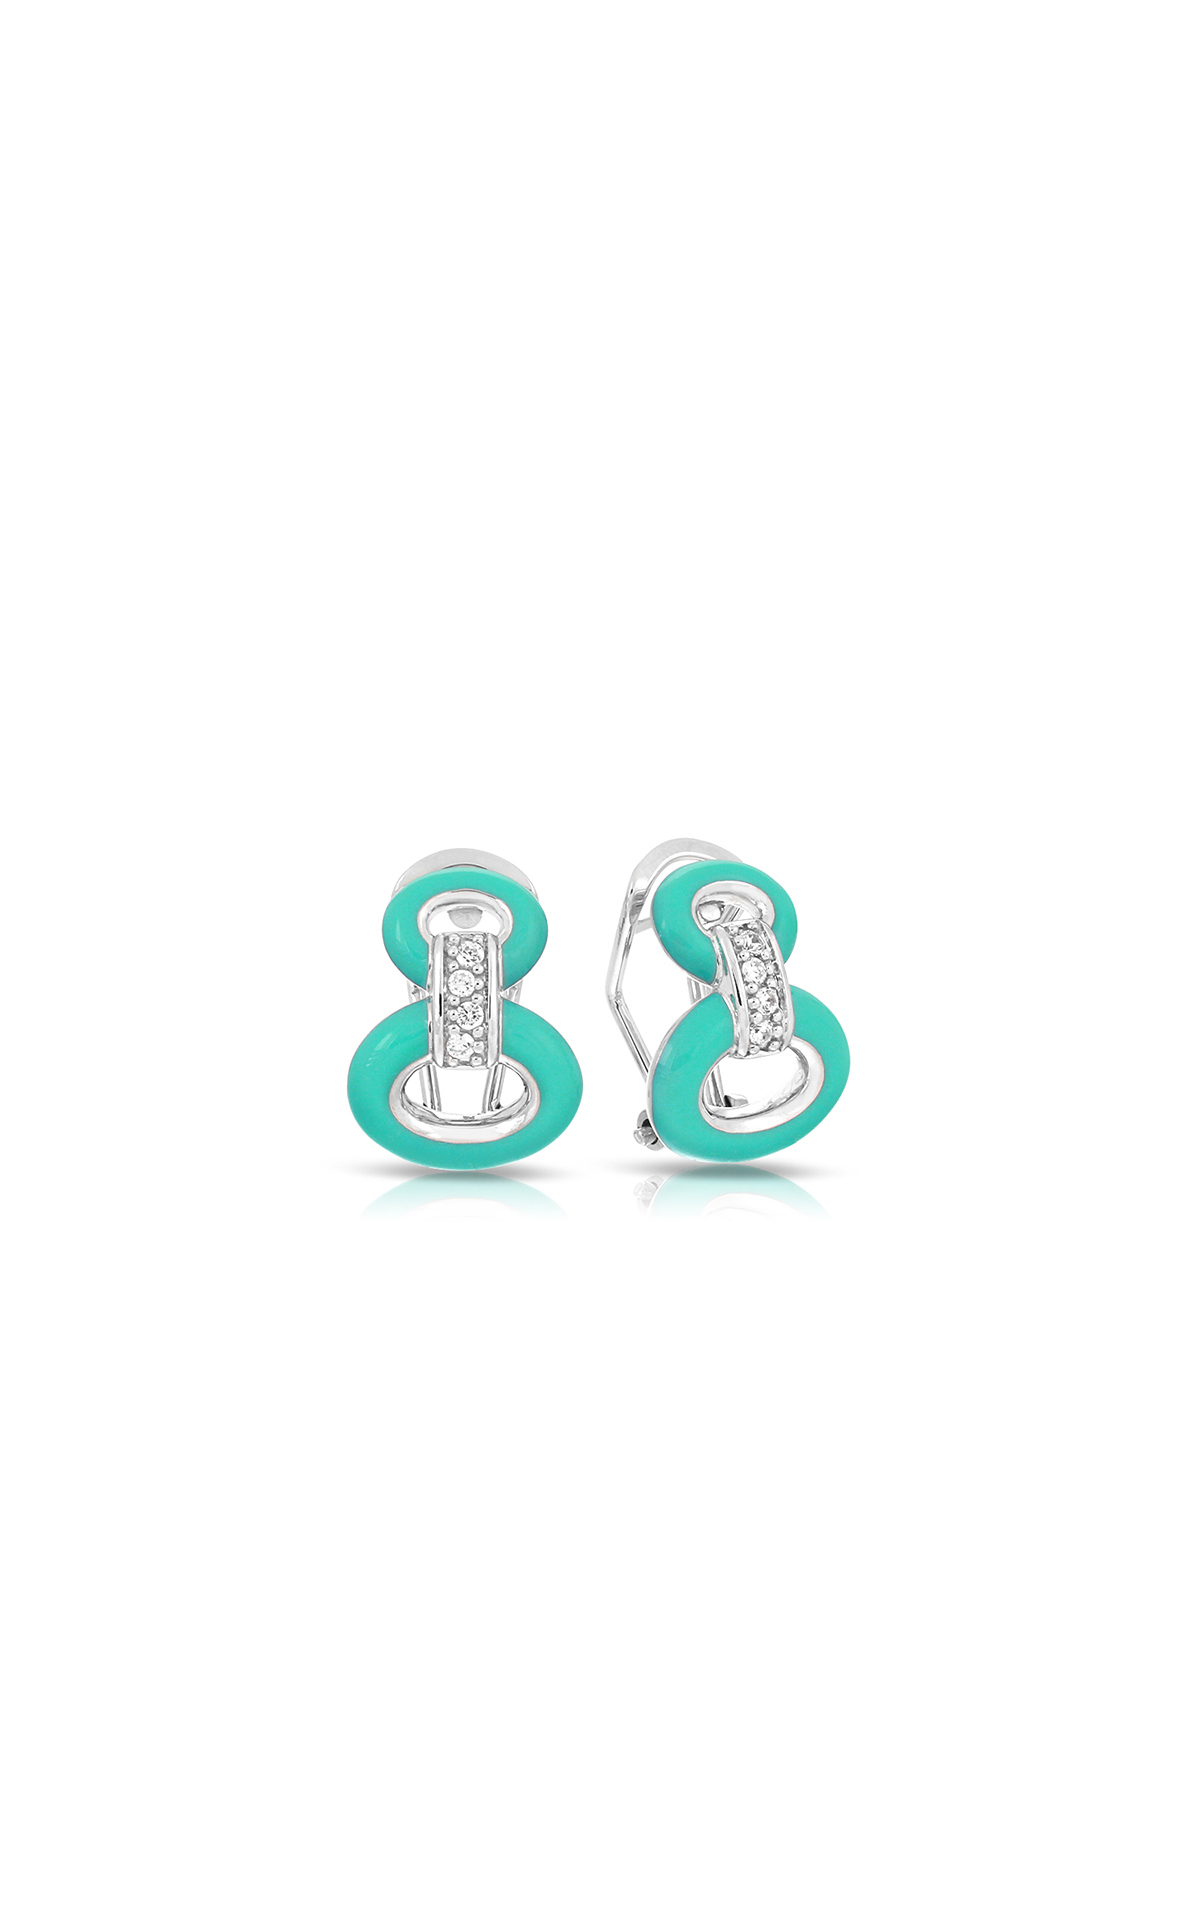 Belle Etoile Connection Aqua Earrings 3021620401 product image